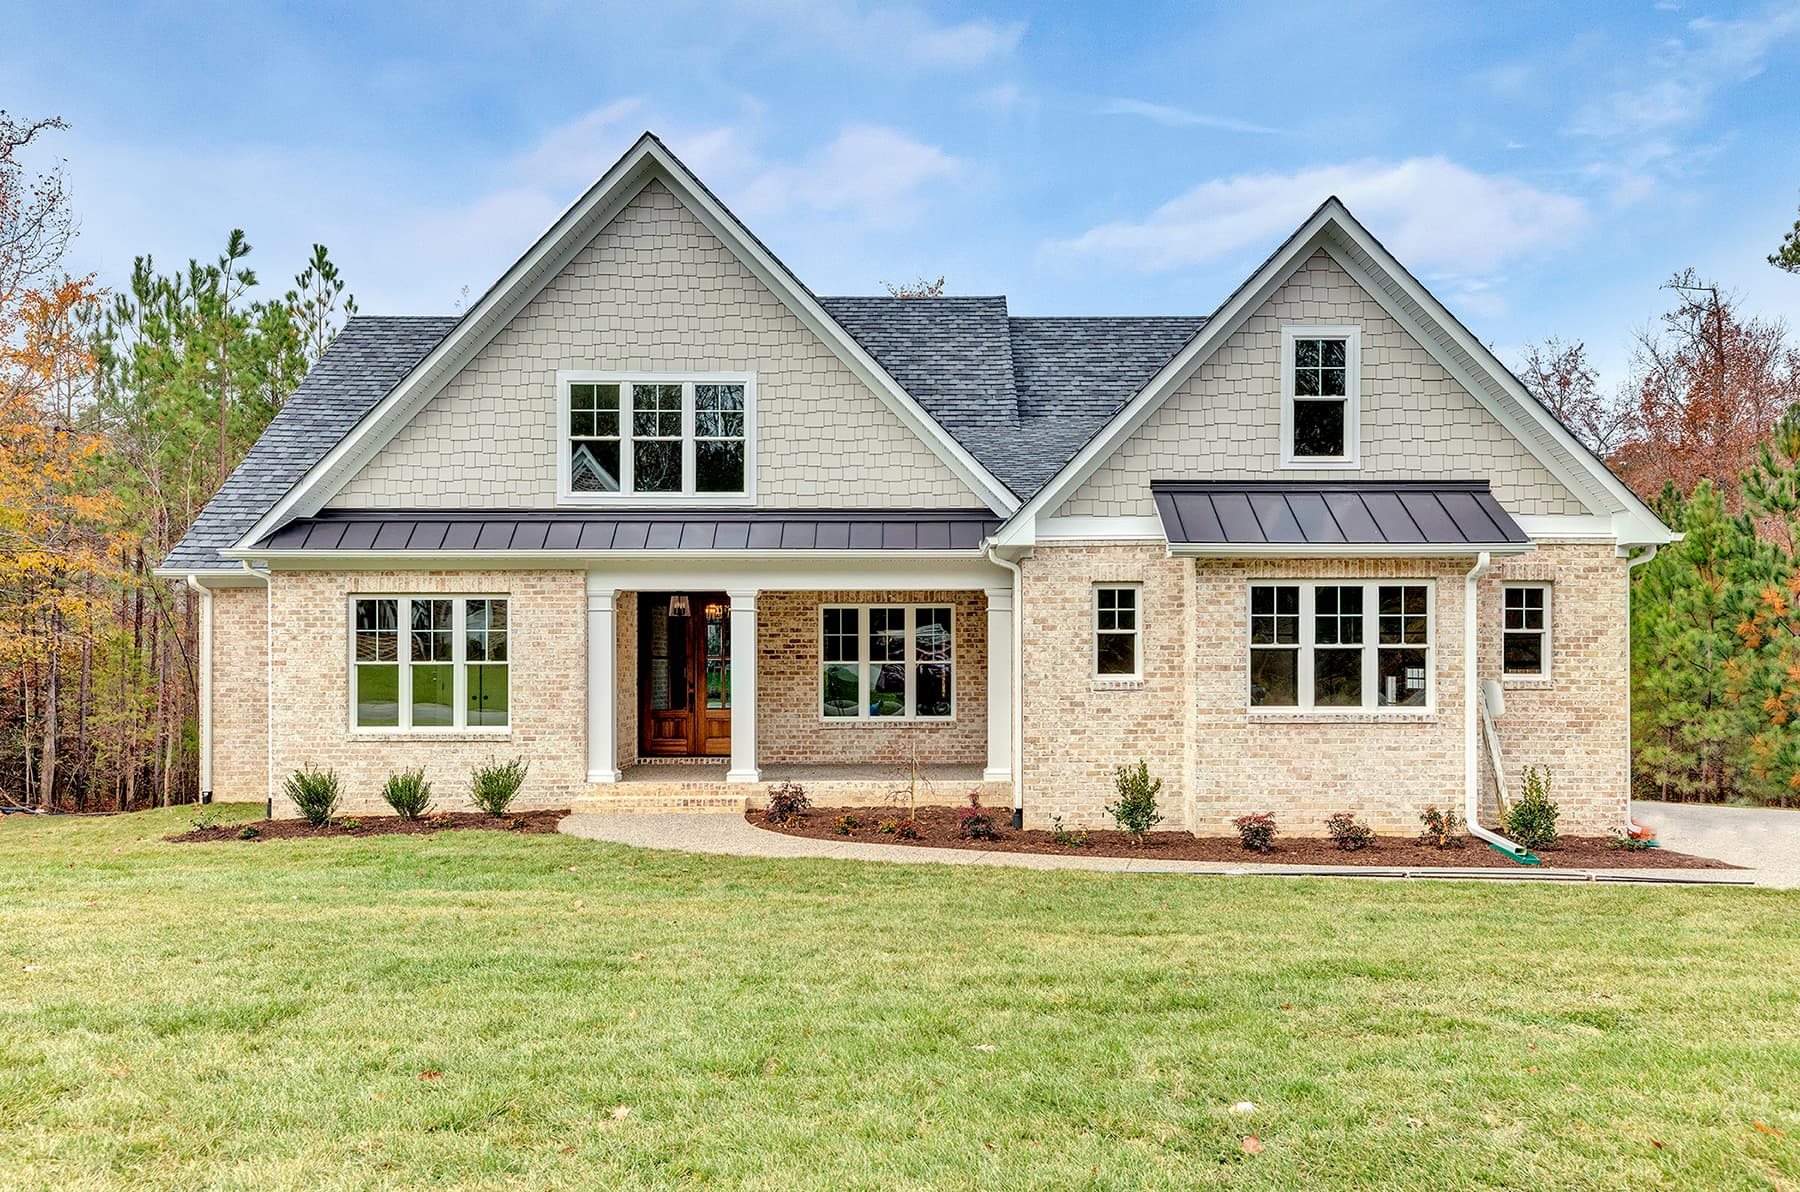 White Double-Hung Windows Provide Finishing Touch to New Richmond Home